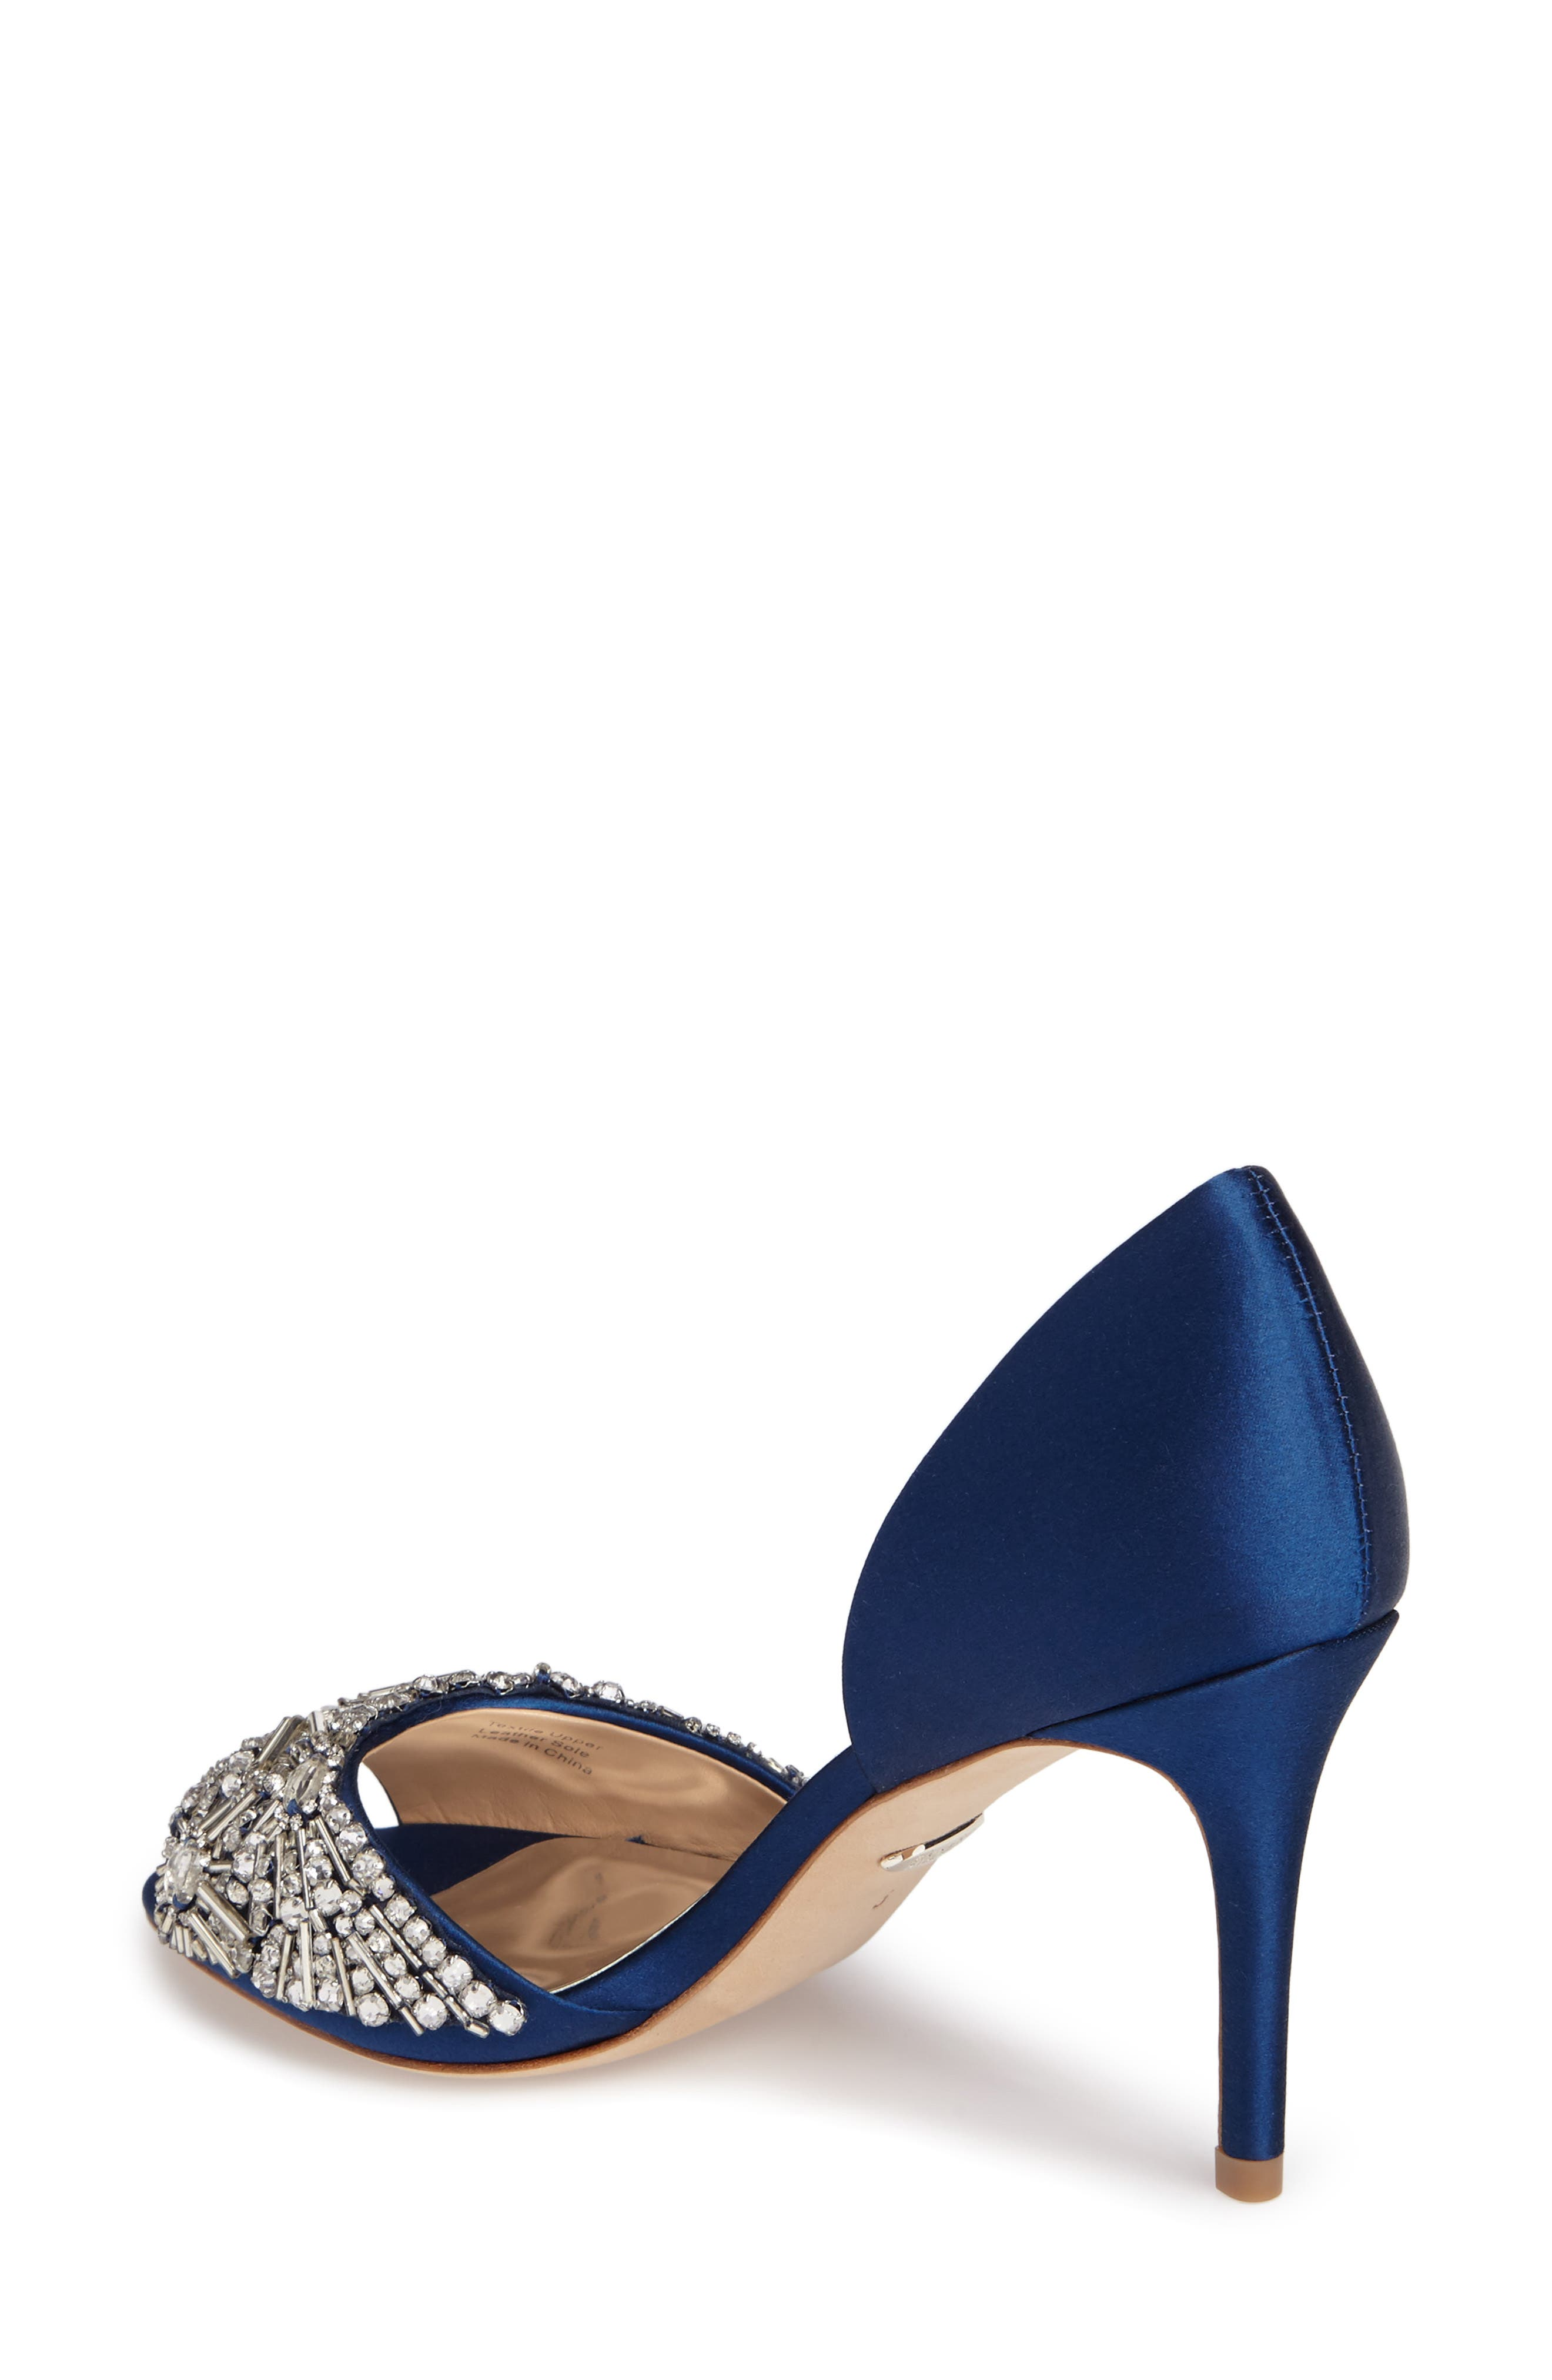 Maria Embellished d'Orsay Pump,                             Alternate thumbnail 9, color,